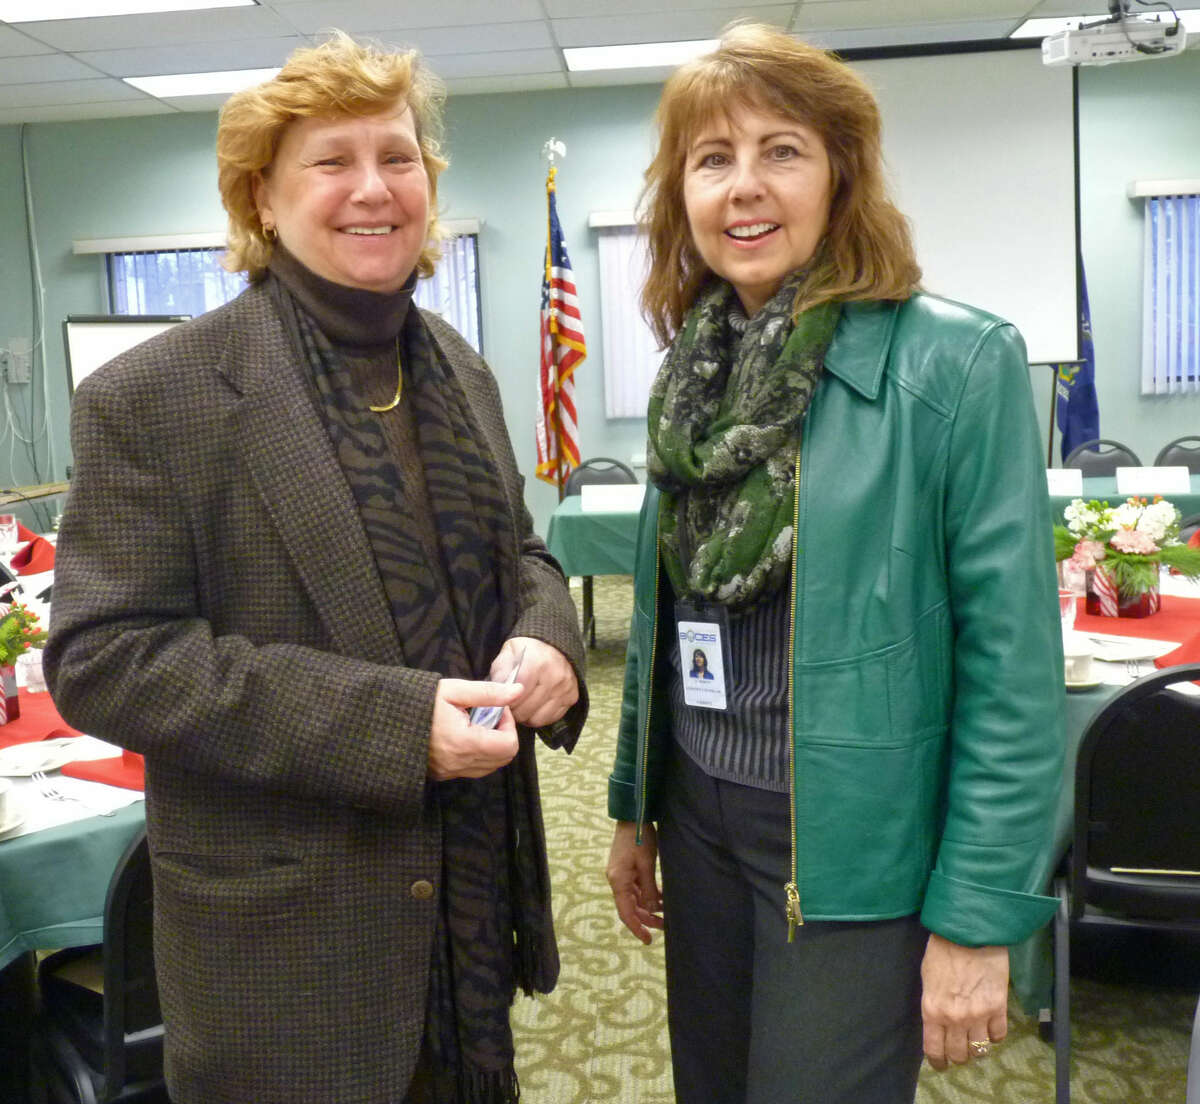 Were you Seen with industry and school experts at the Capital Region Career and Technical School on Dec. 18, 2014 to discuss how educators can better prepare students for college and the workforce?